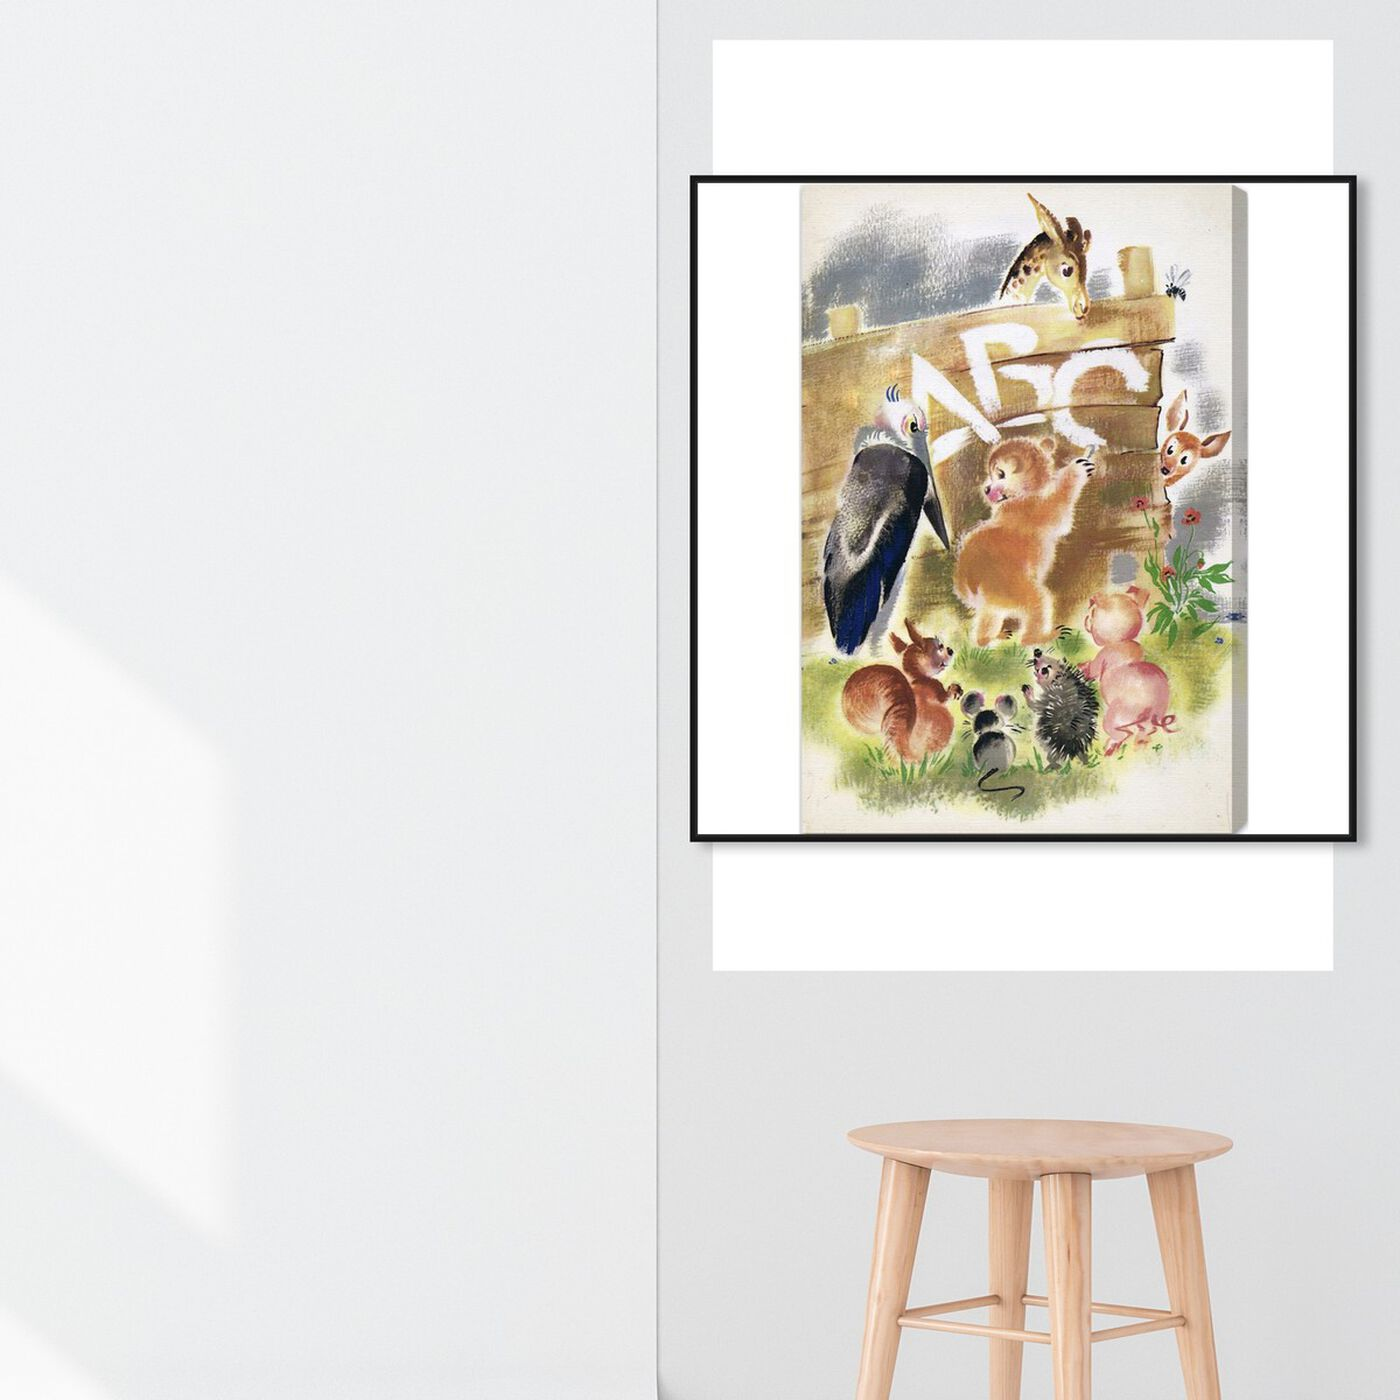 Hanging view of Animal ABC featuring animals and baby animals art.